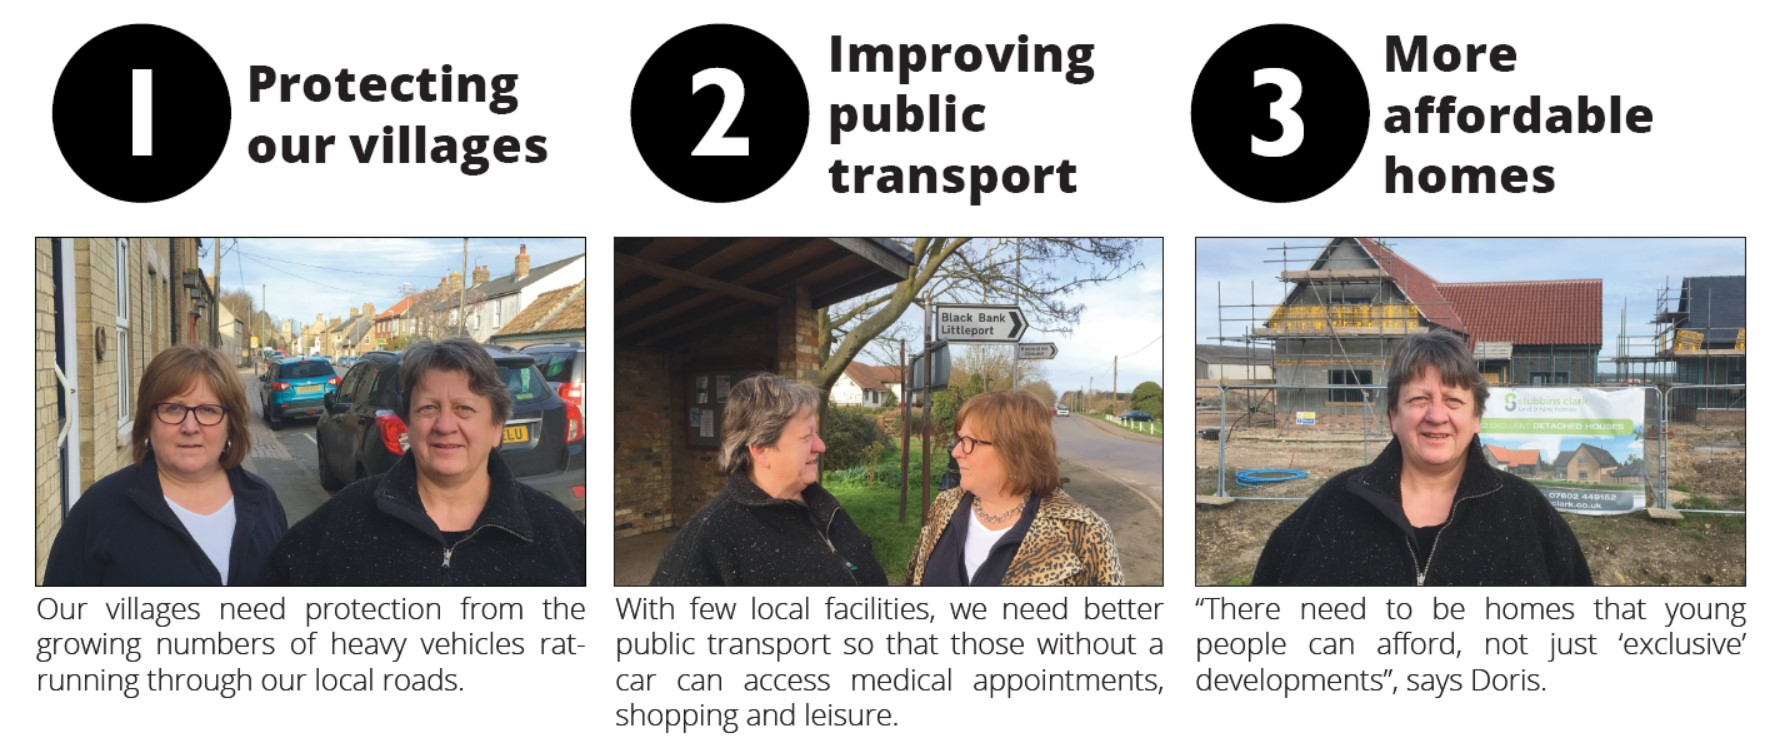 More Affordable Homes, Improving Public Transport and protecting our villages